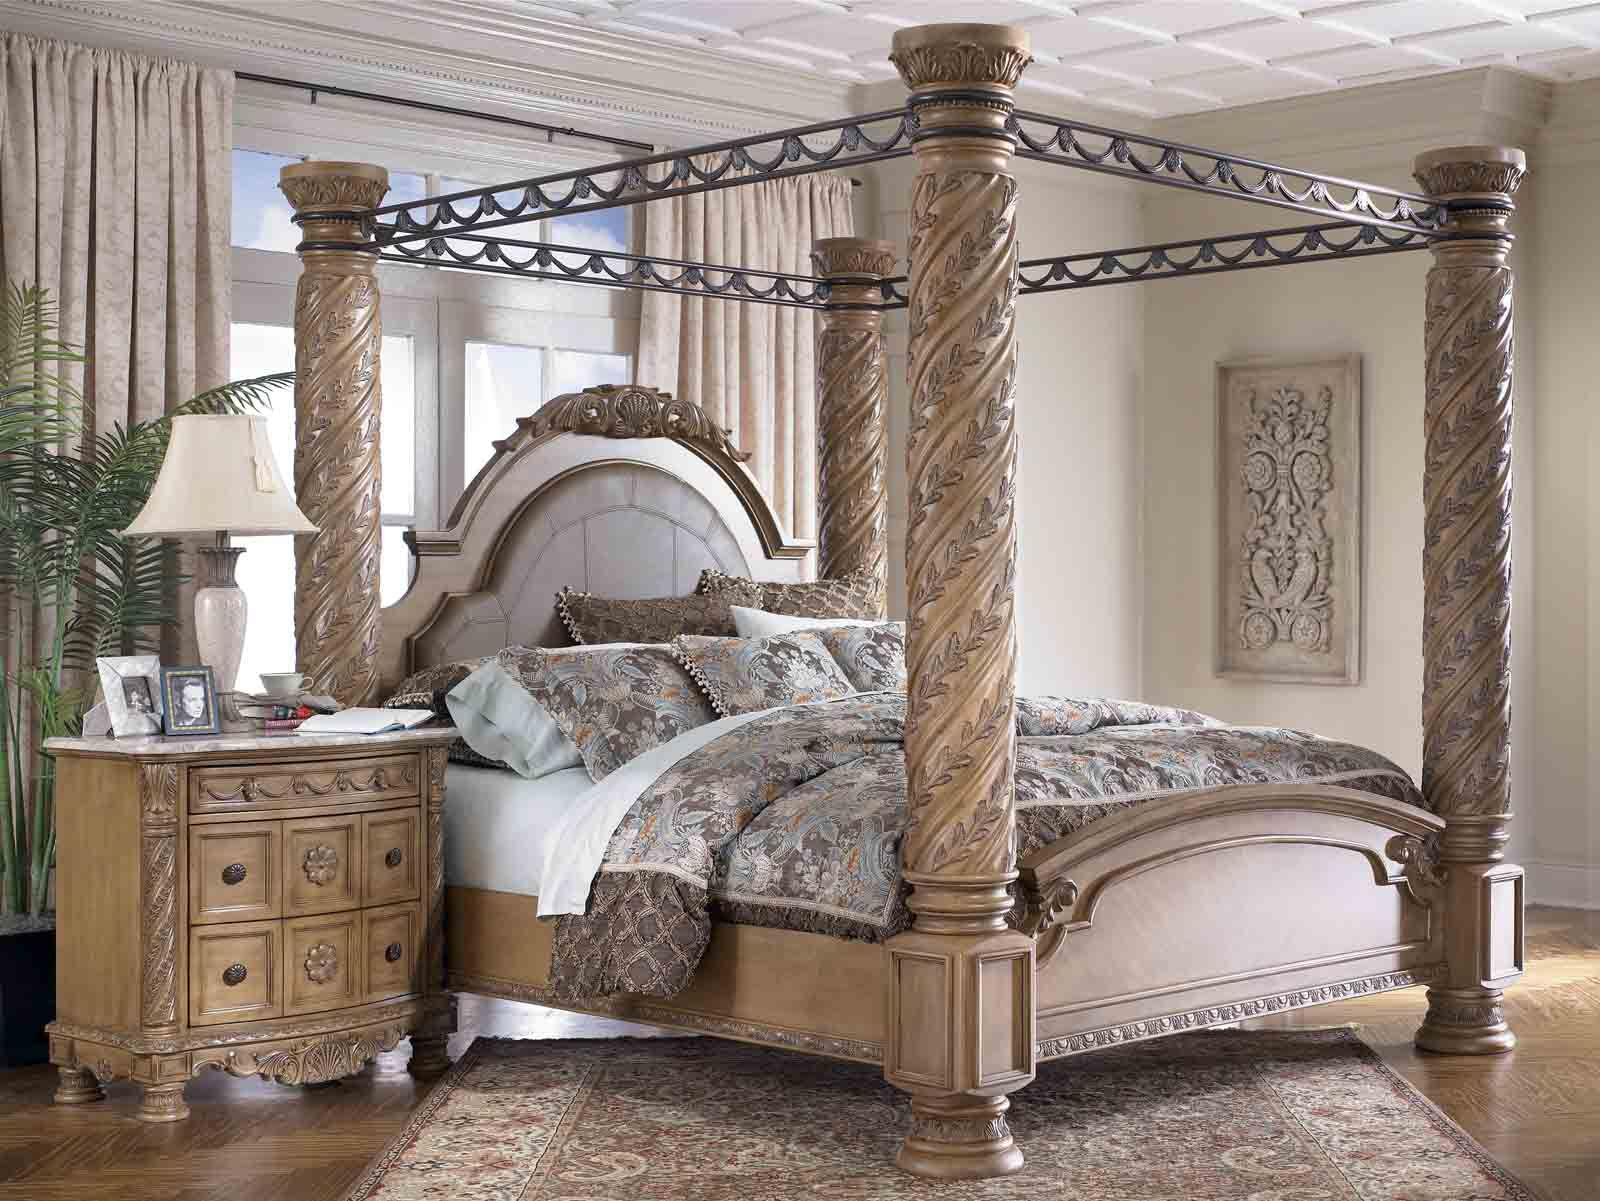 Cool Canopy Bed Decorations: Fantastically Hot Wrought Iron Bedroom ...